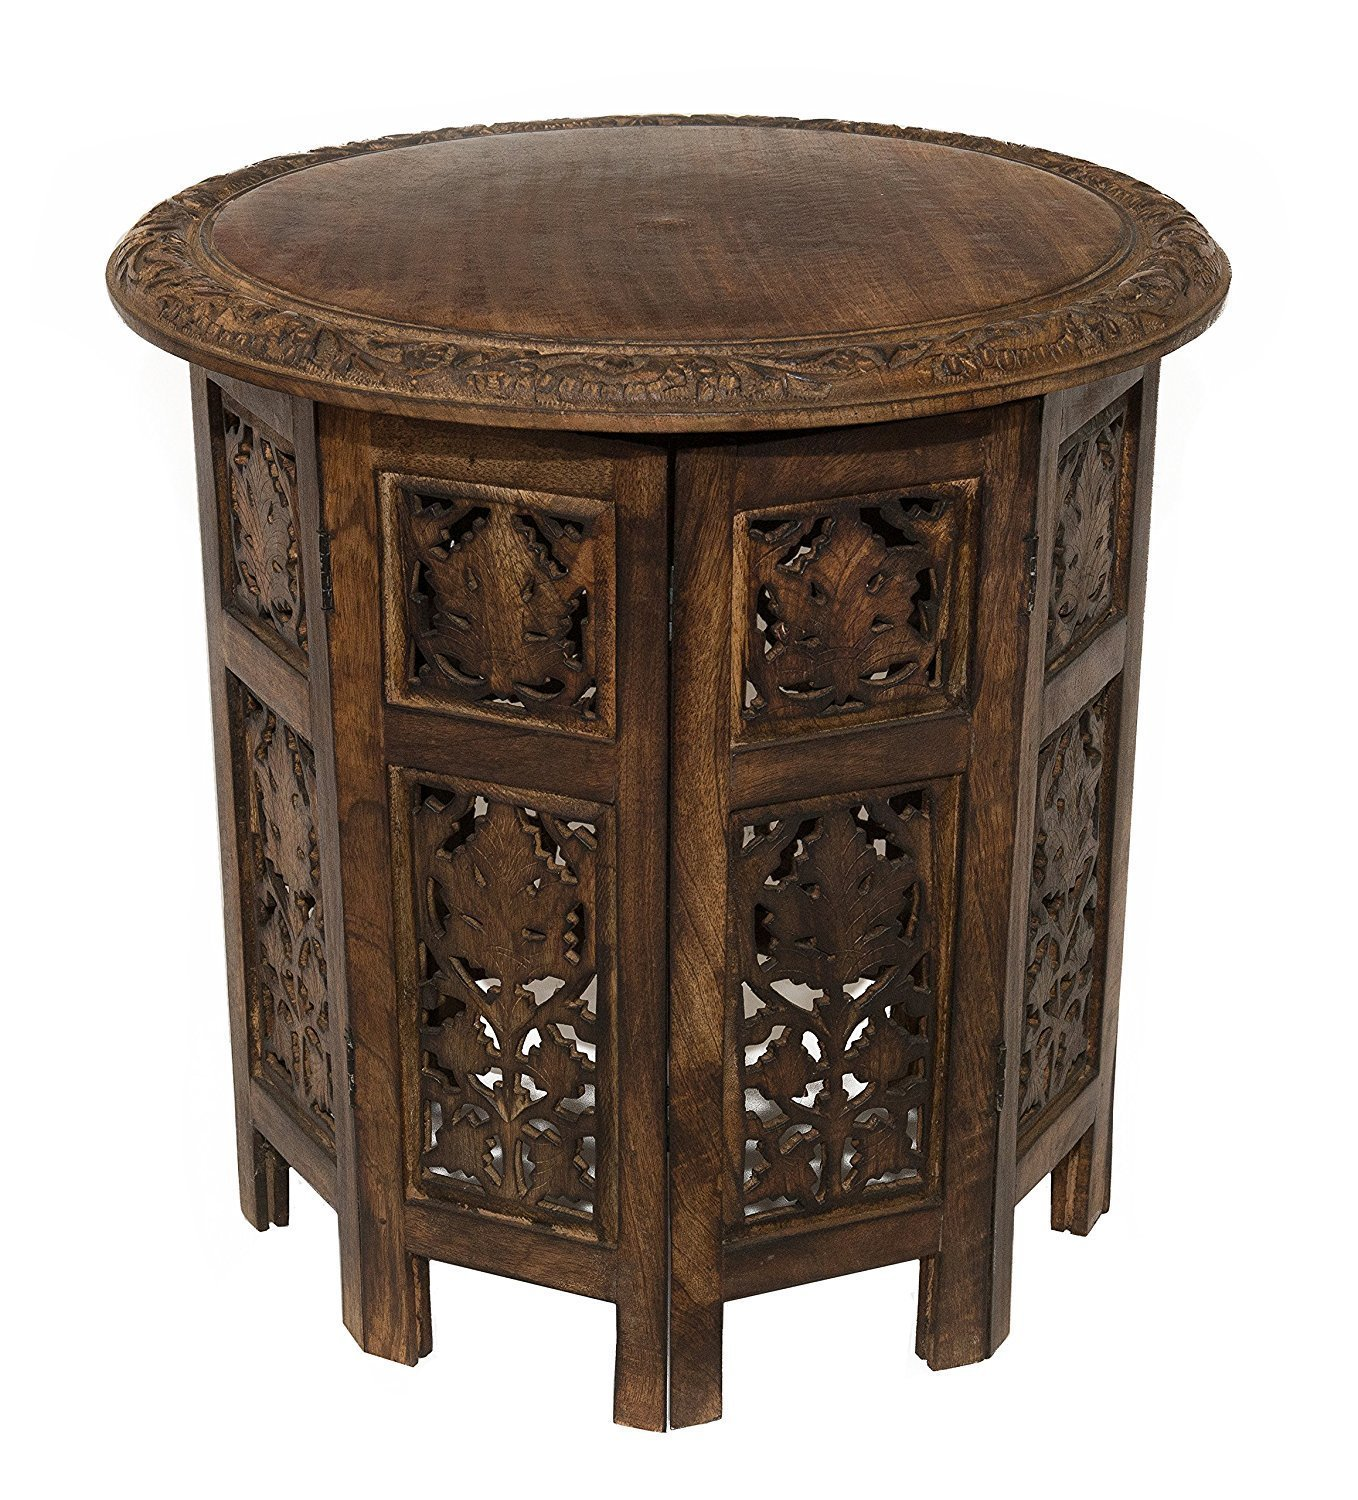 artesia solid wood hand carved rajasthan folding accent table coffee inch round top high brown kitchen dining trestle unique light fixtures wooden plant stands indoor agate